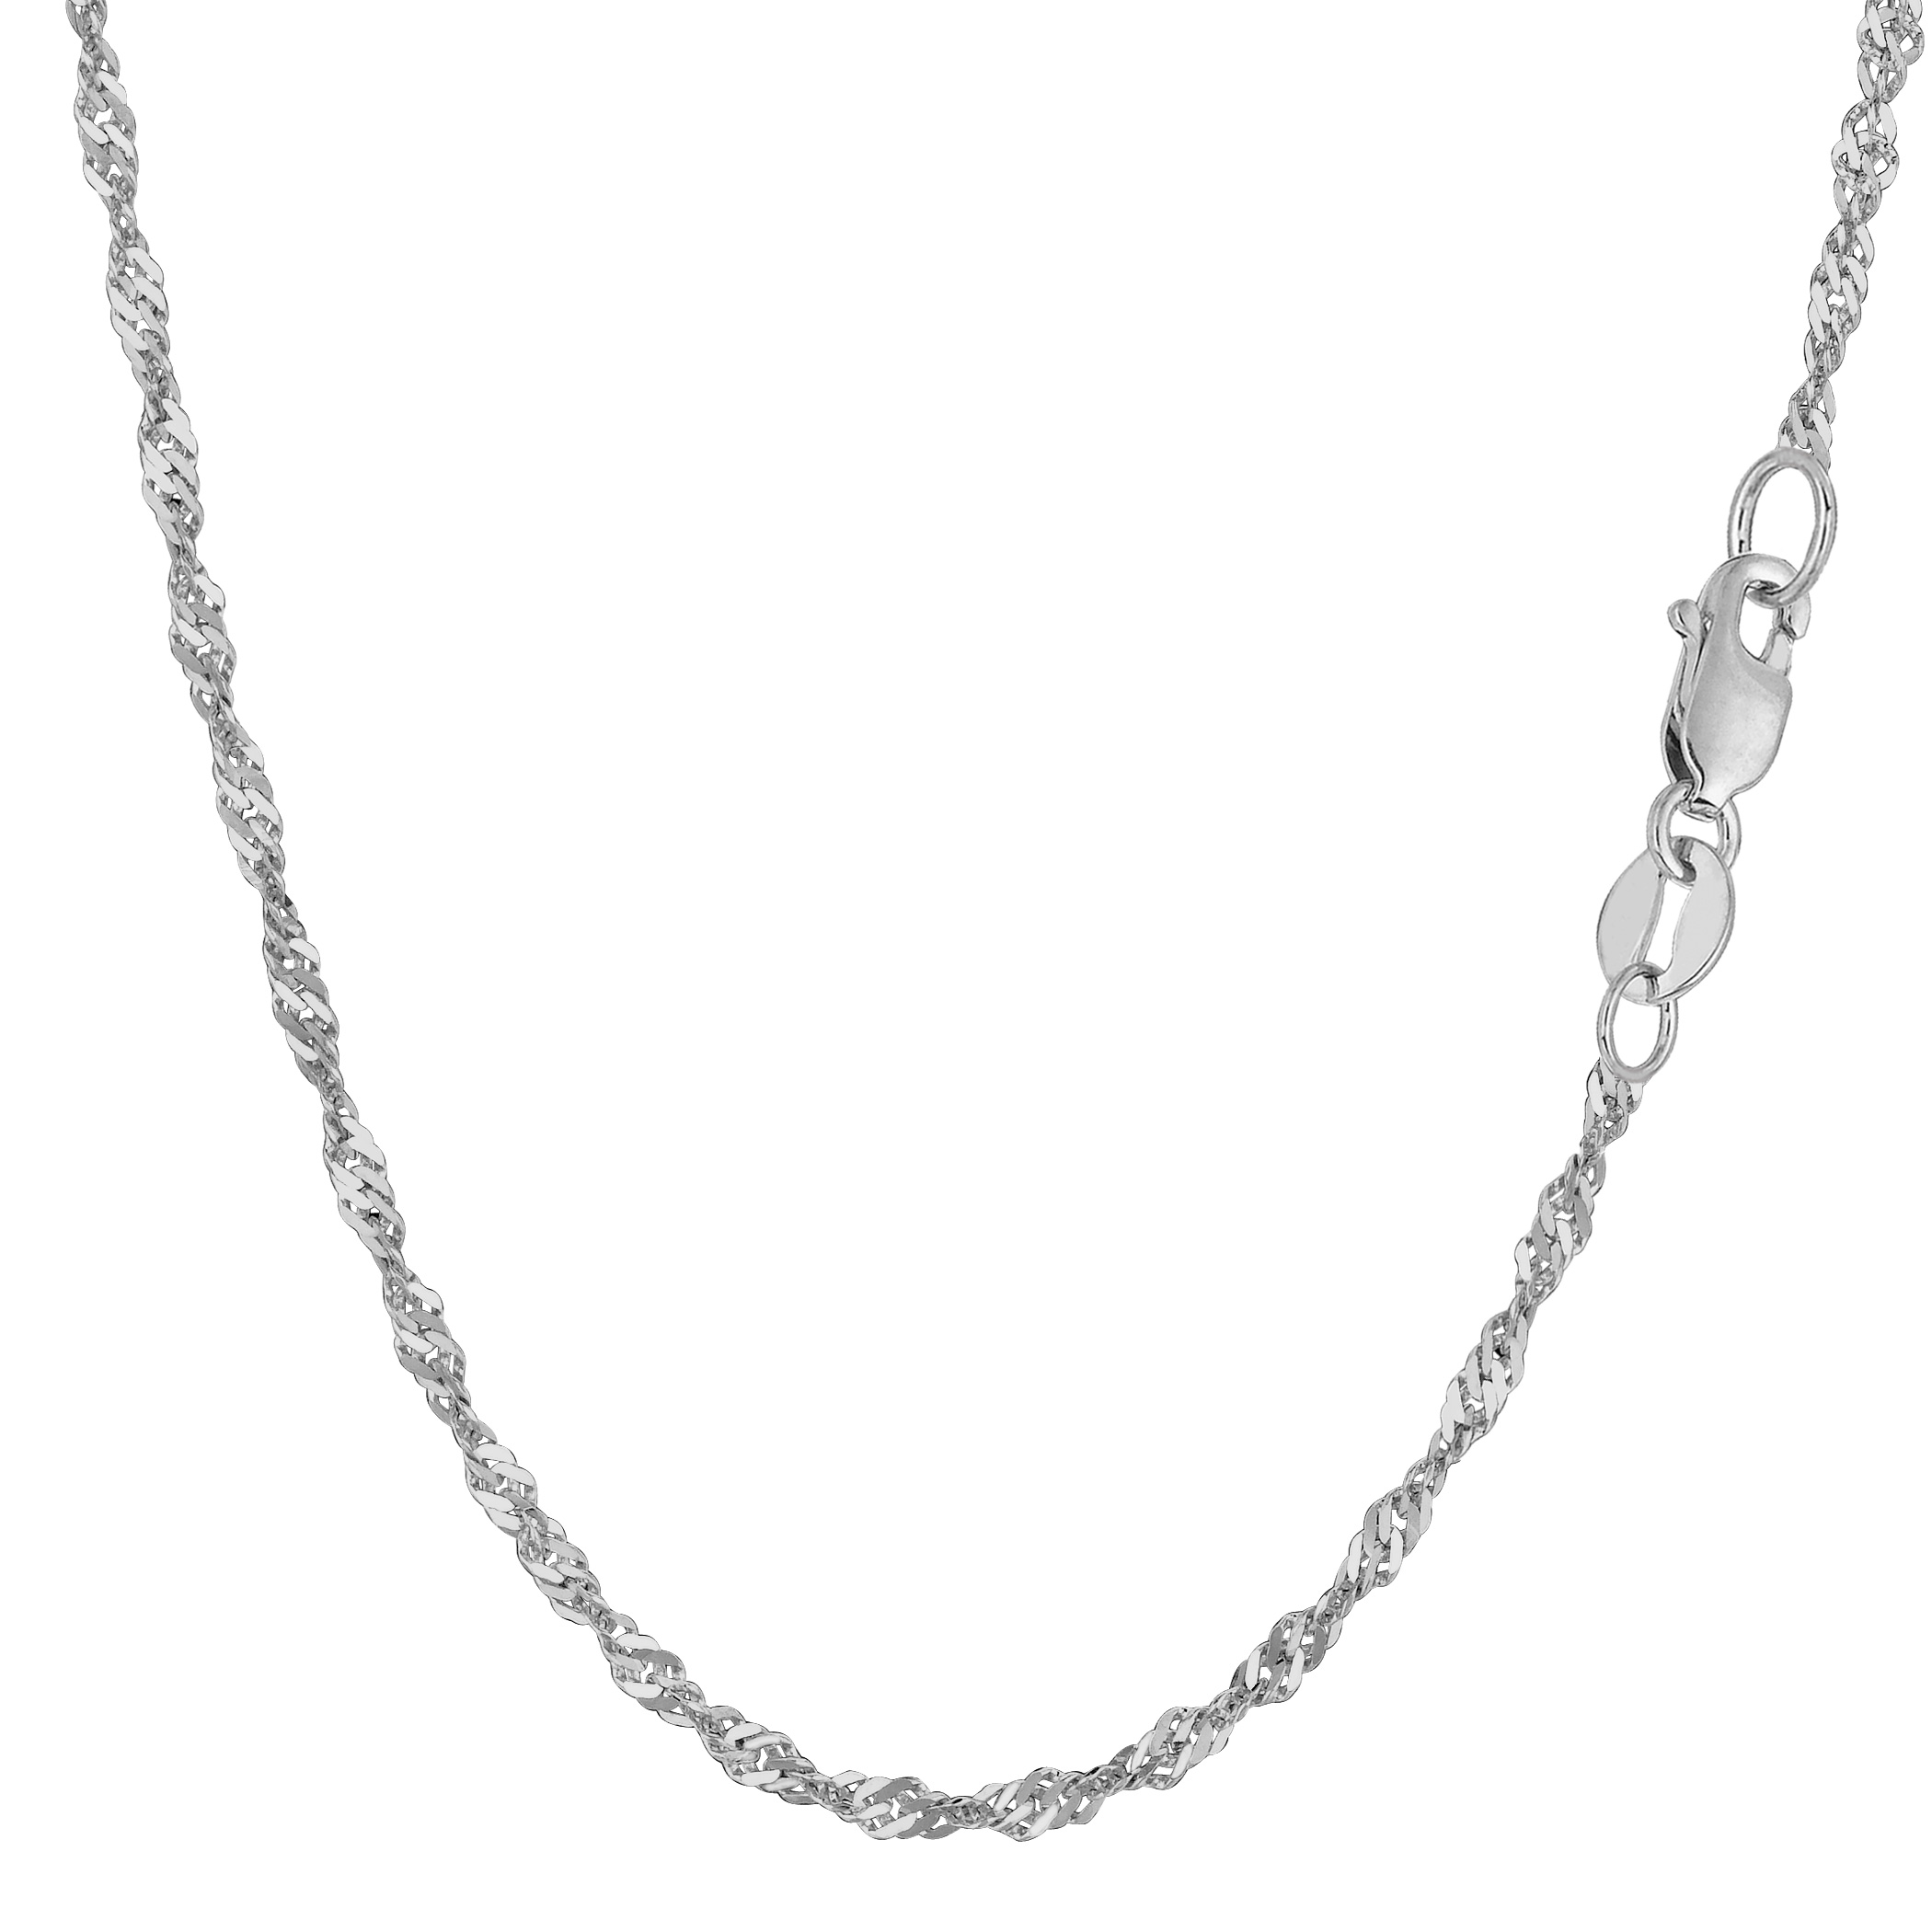 14k White Gold Singapore Chain Bracelet, 2.1mm, 7″